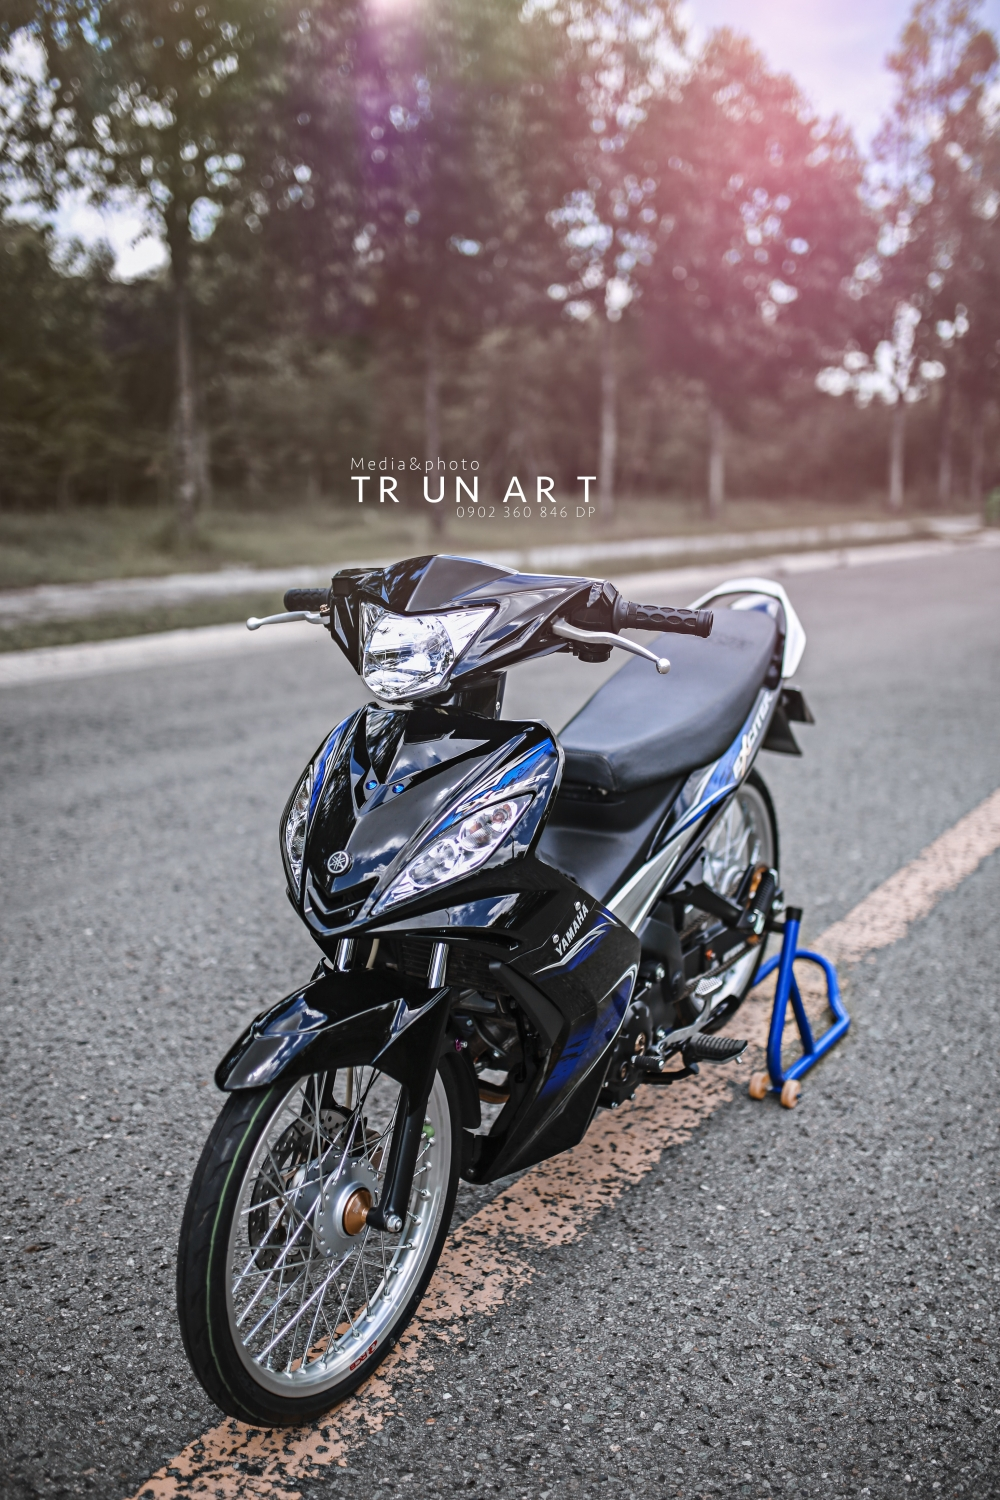 Exciter 135cc thuot tha truoc ong kinh - 3